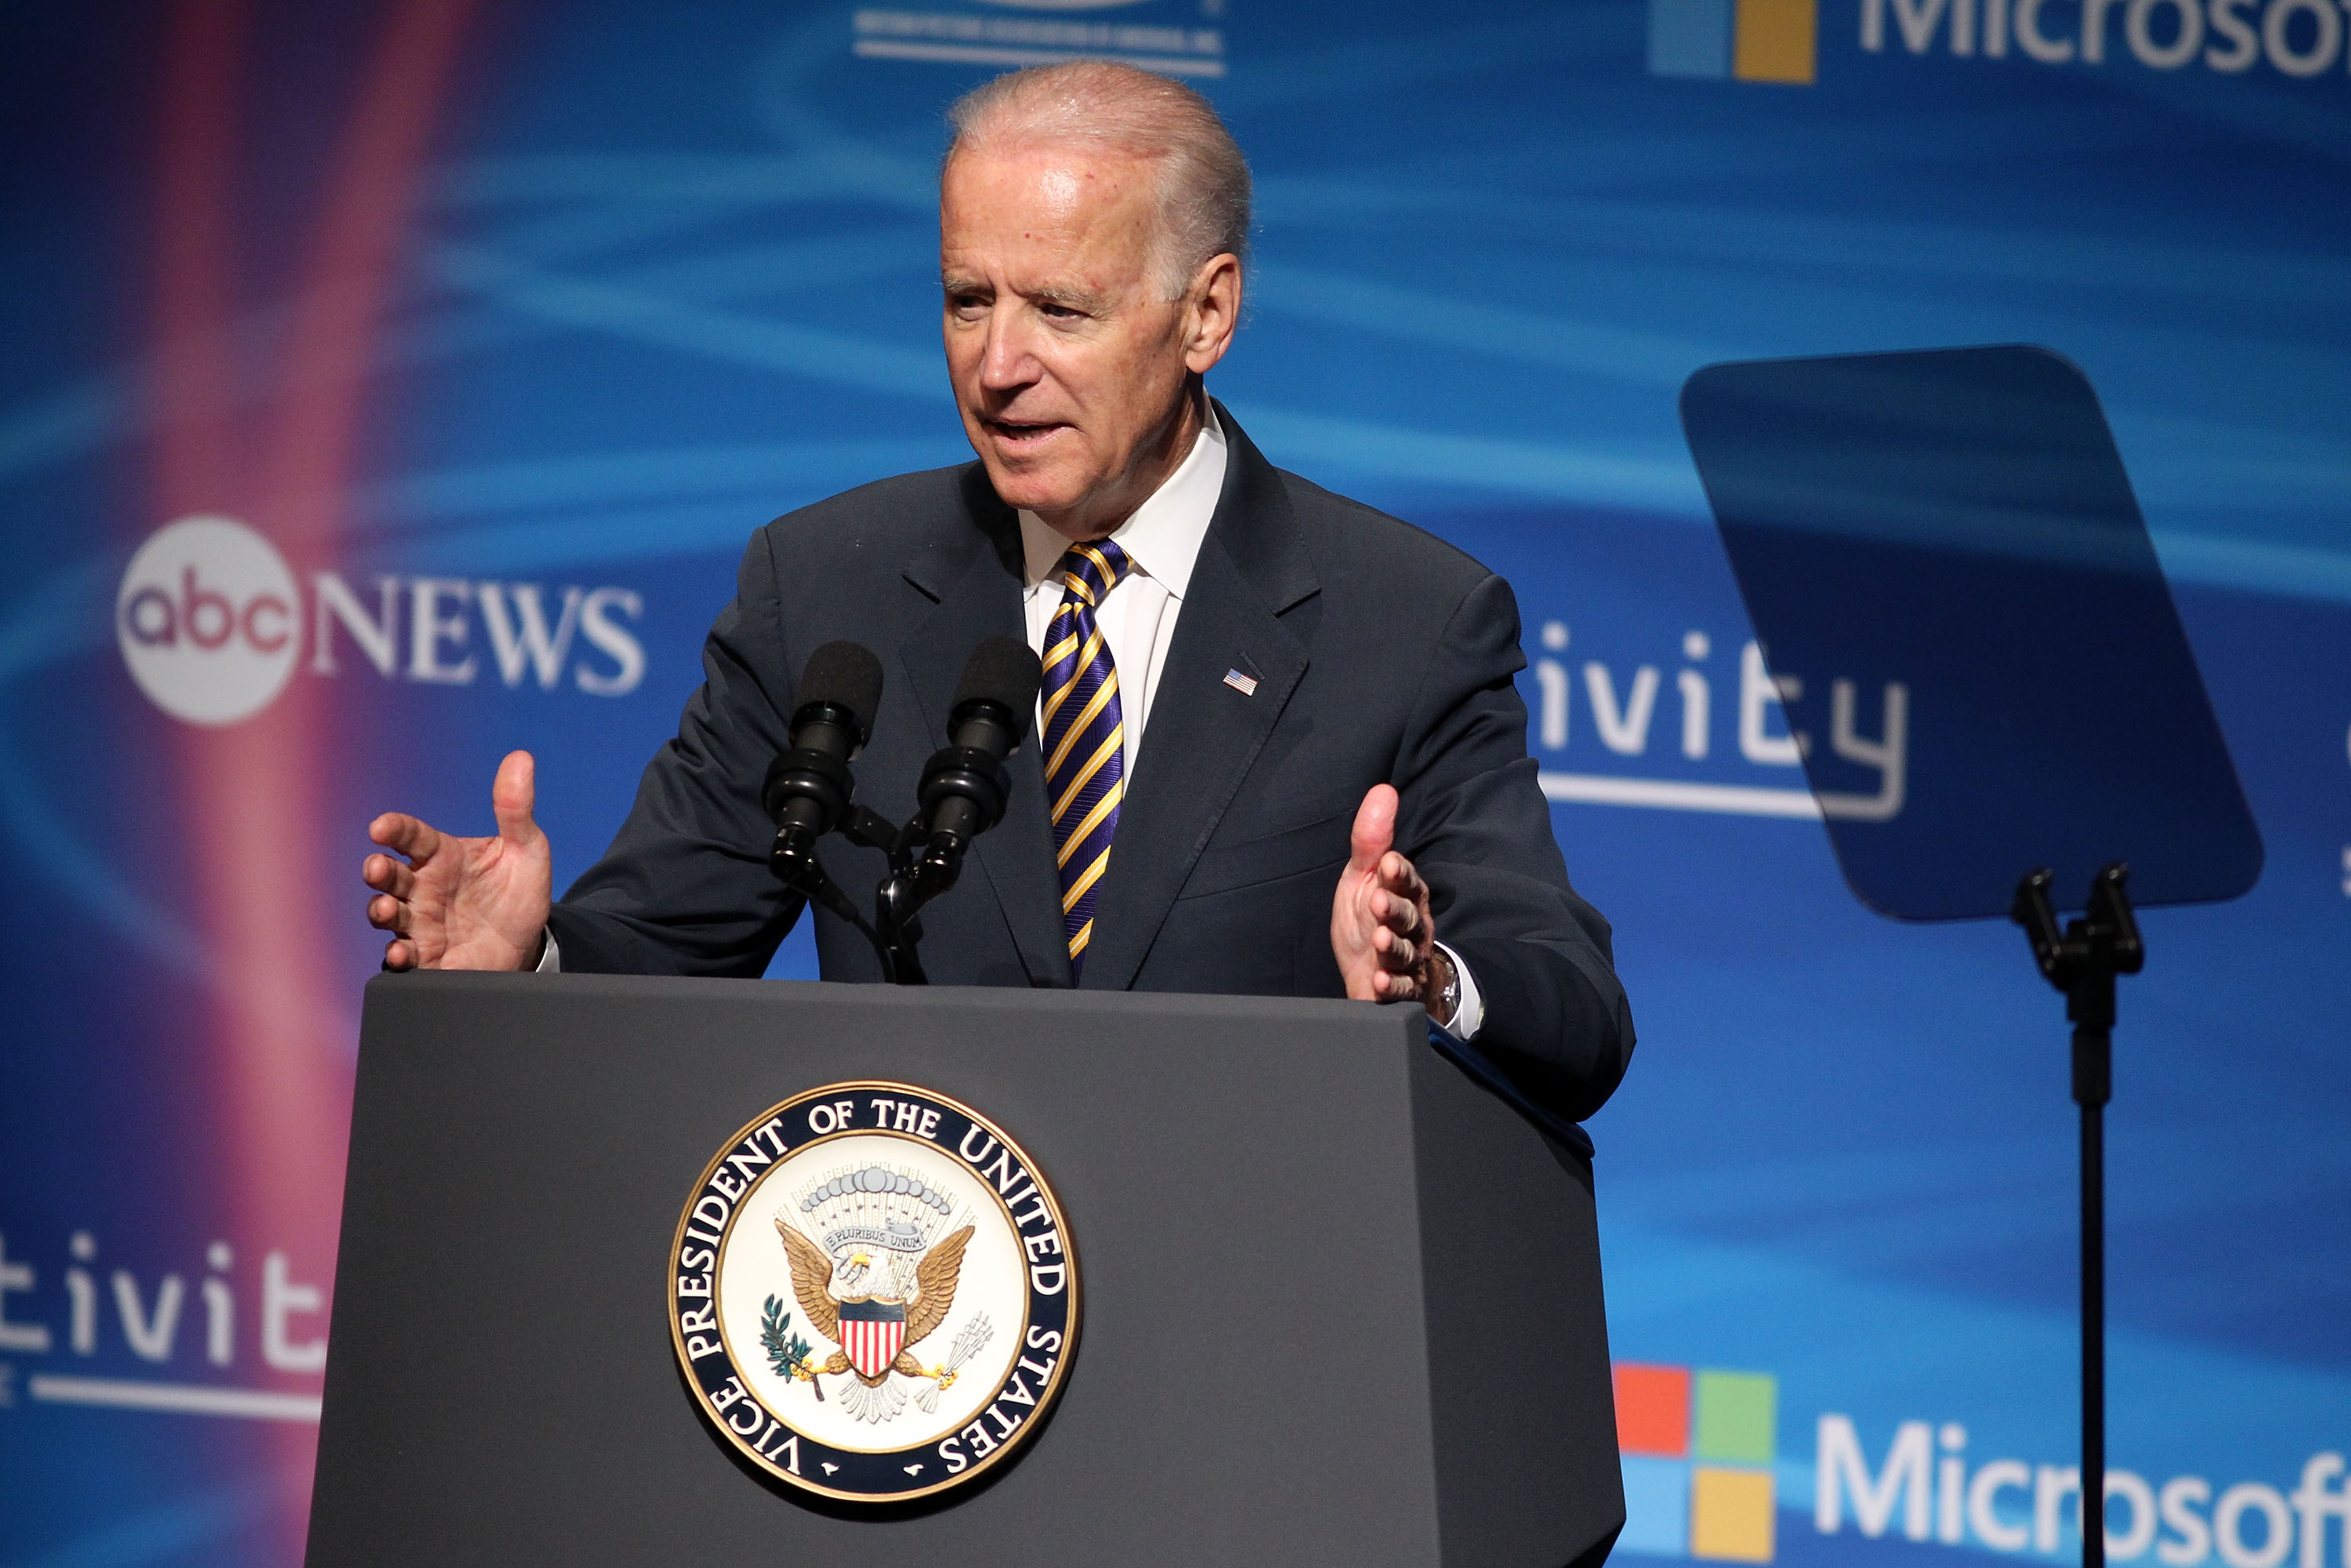 U.S. Vice President Joseph Biden discusses  international intellectual property protections at the 2nd Annual Creativity Conference presented by the Motion Picture Association of America at The Newseum on May 2, 2014 in Washington, D.C.